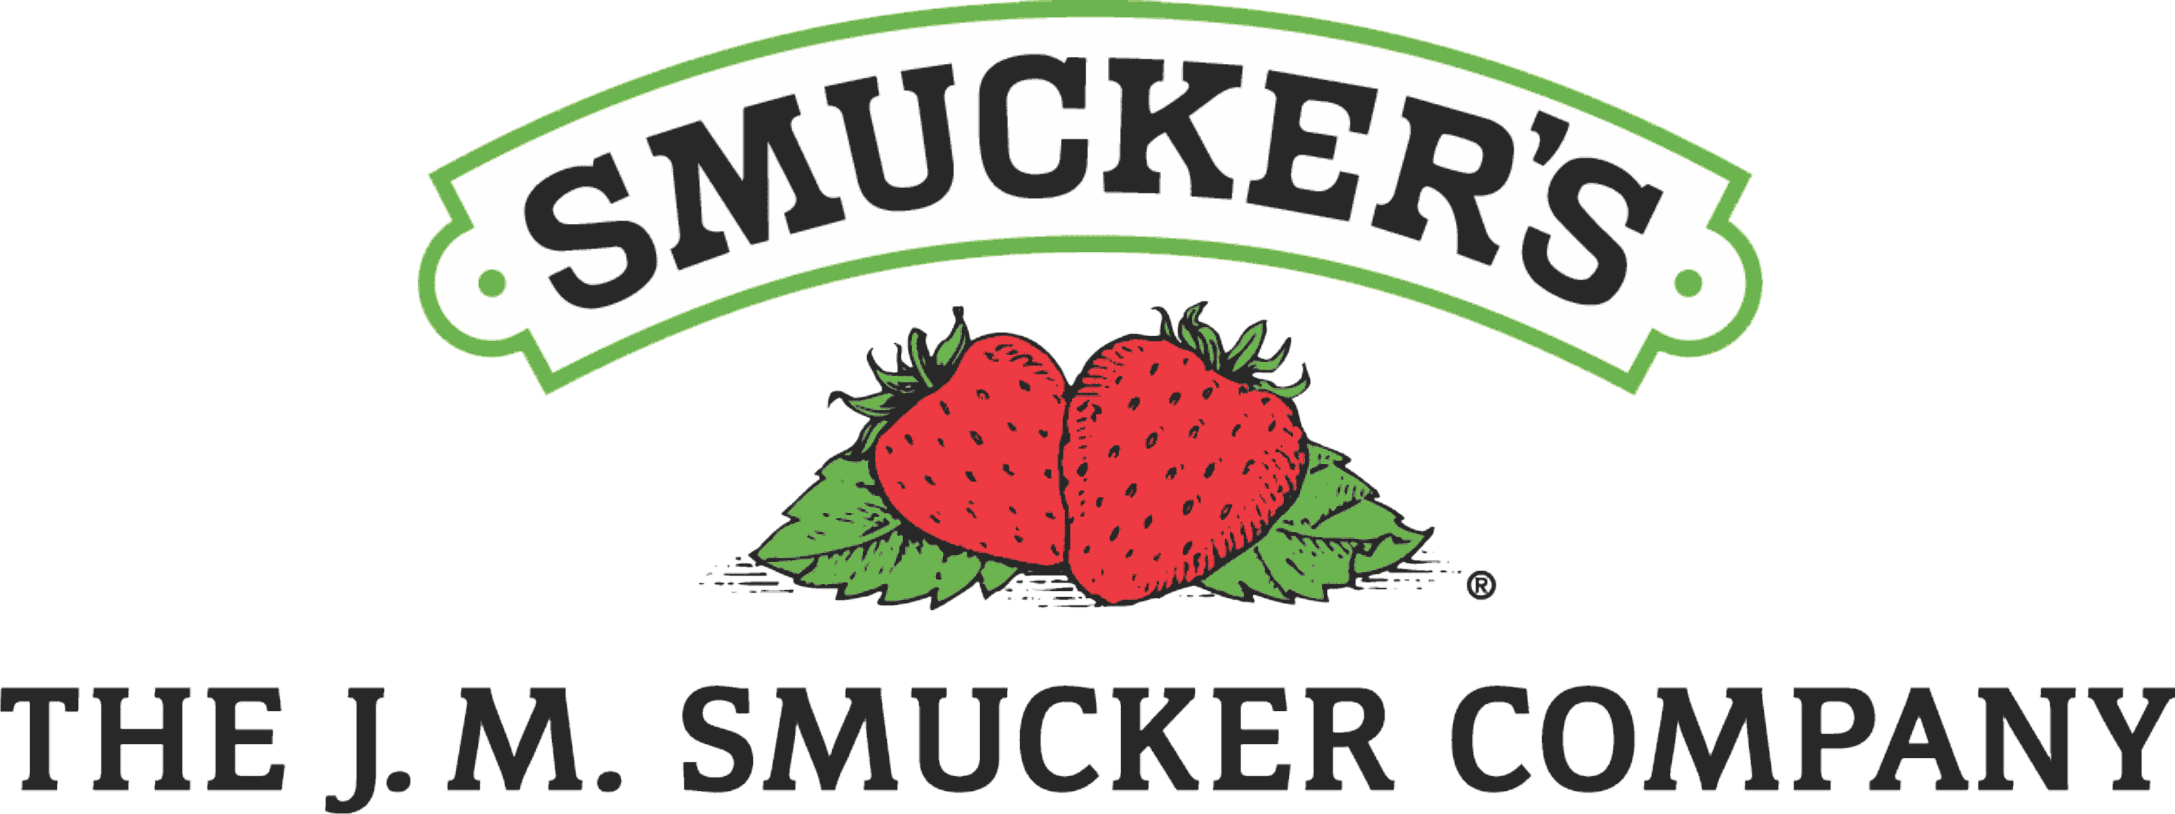 J M Smuckers Company